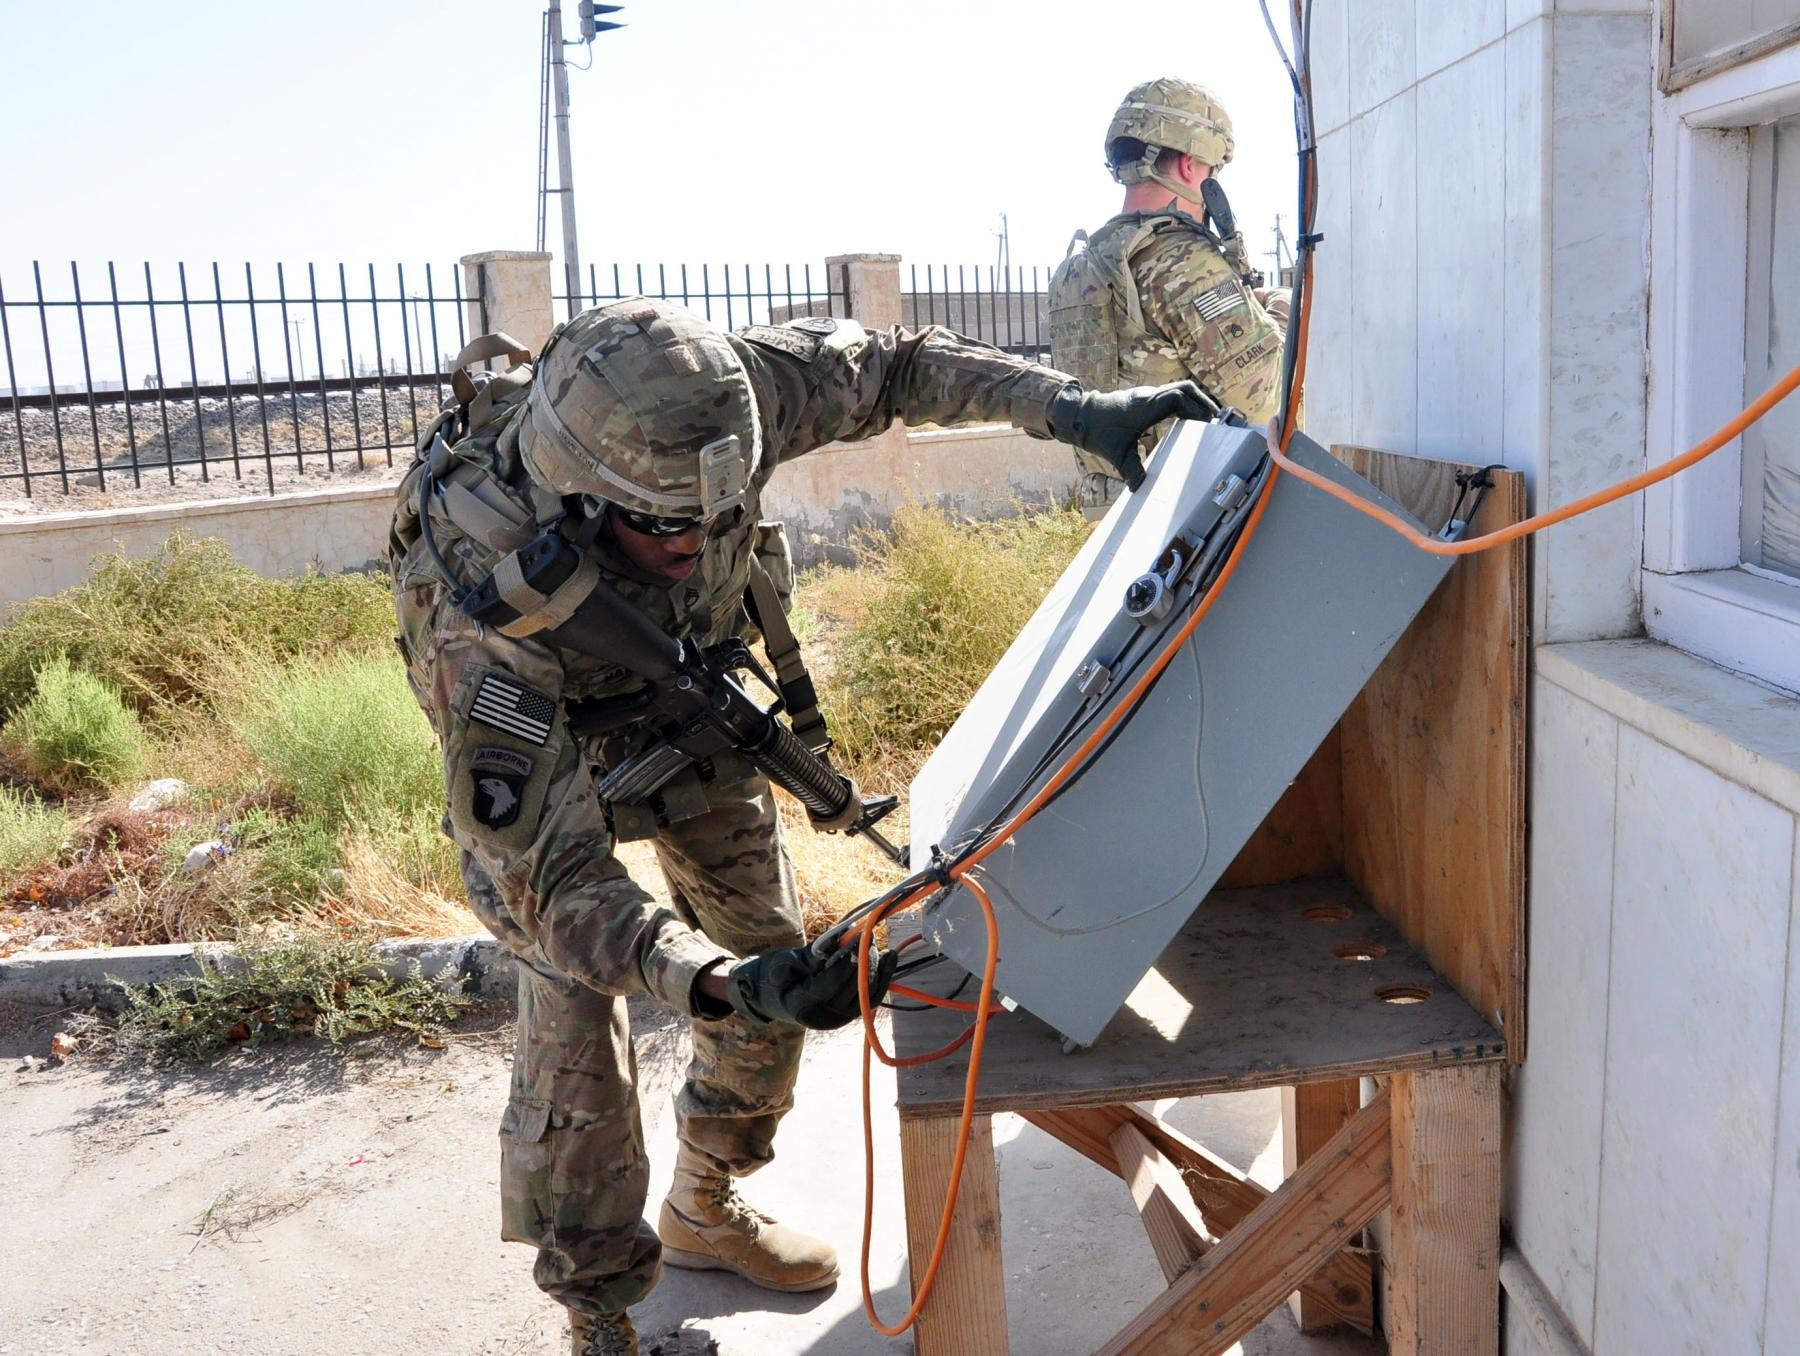 Sustainers use 'interrogator' to track cargo at Afghanistan